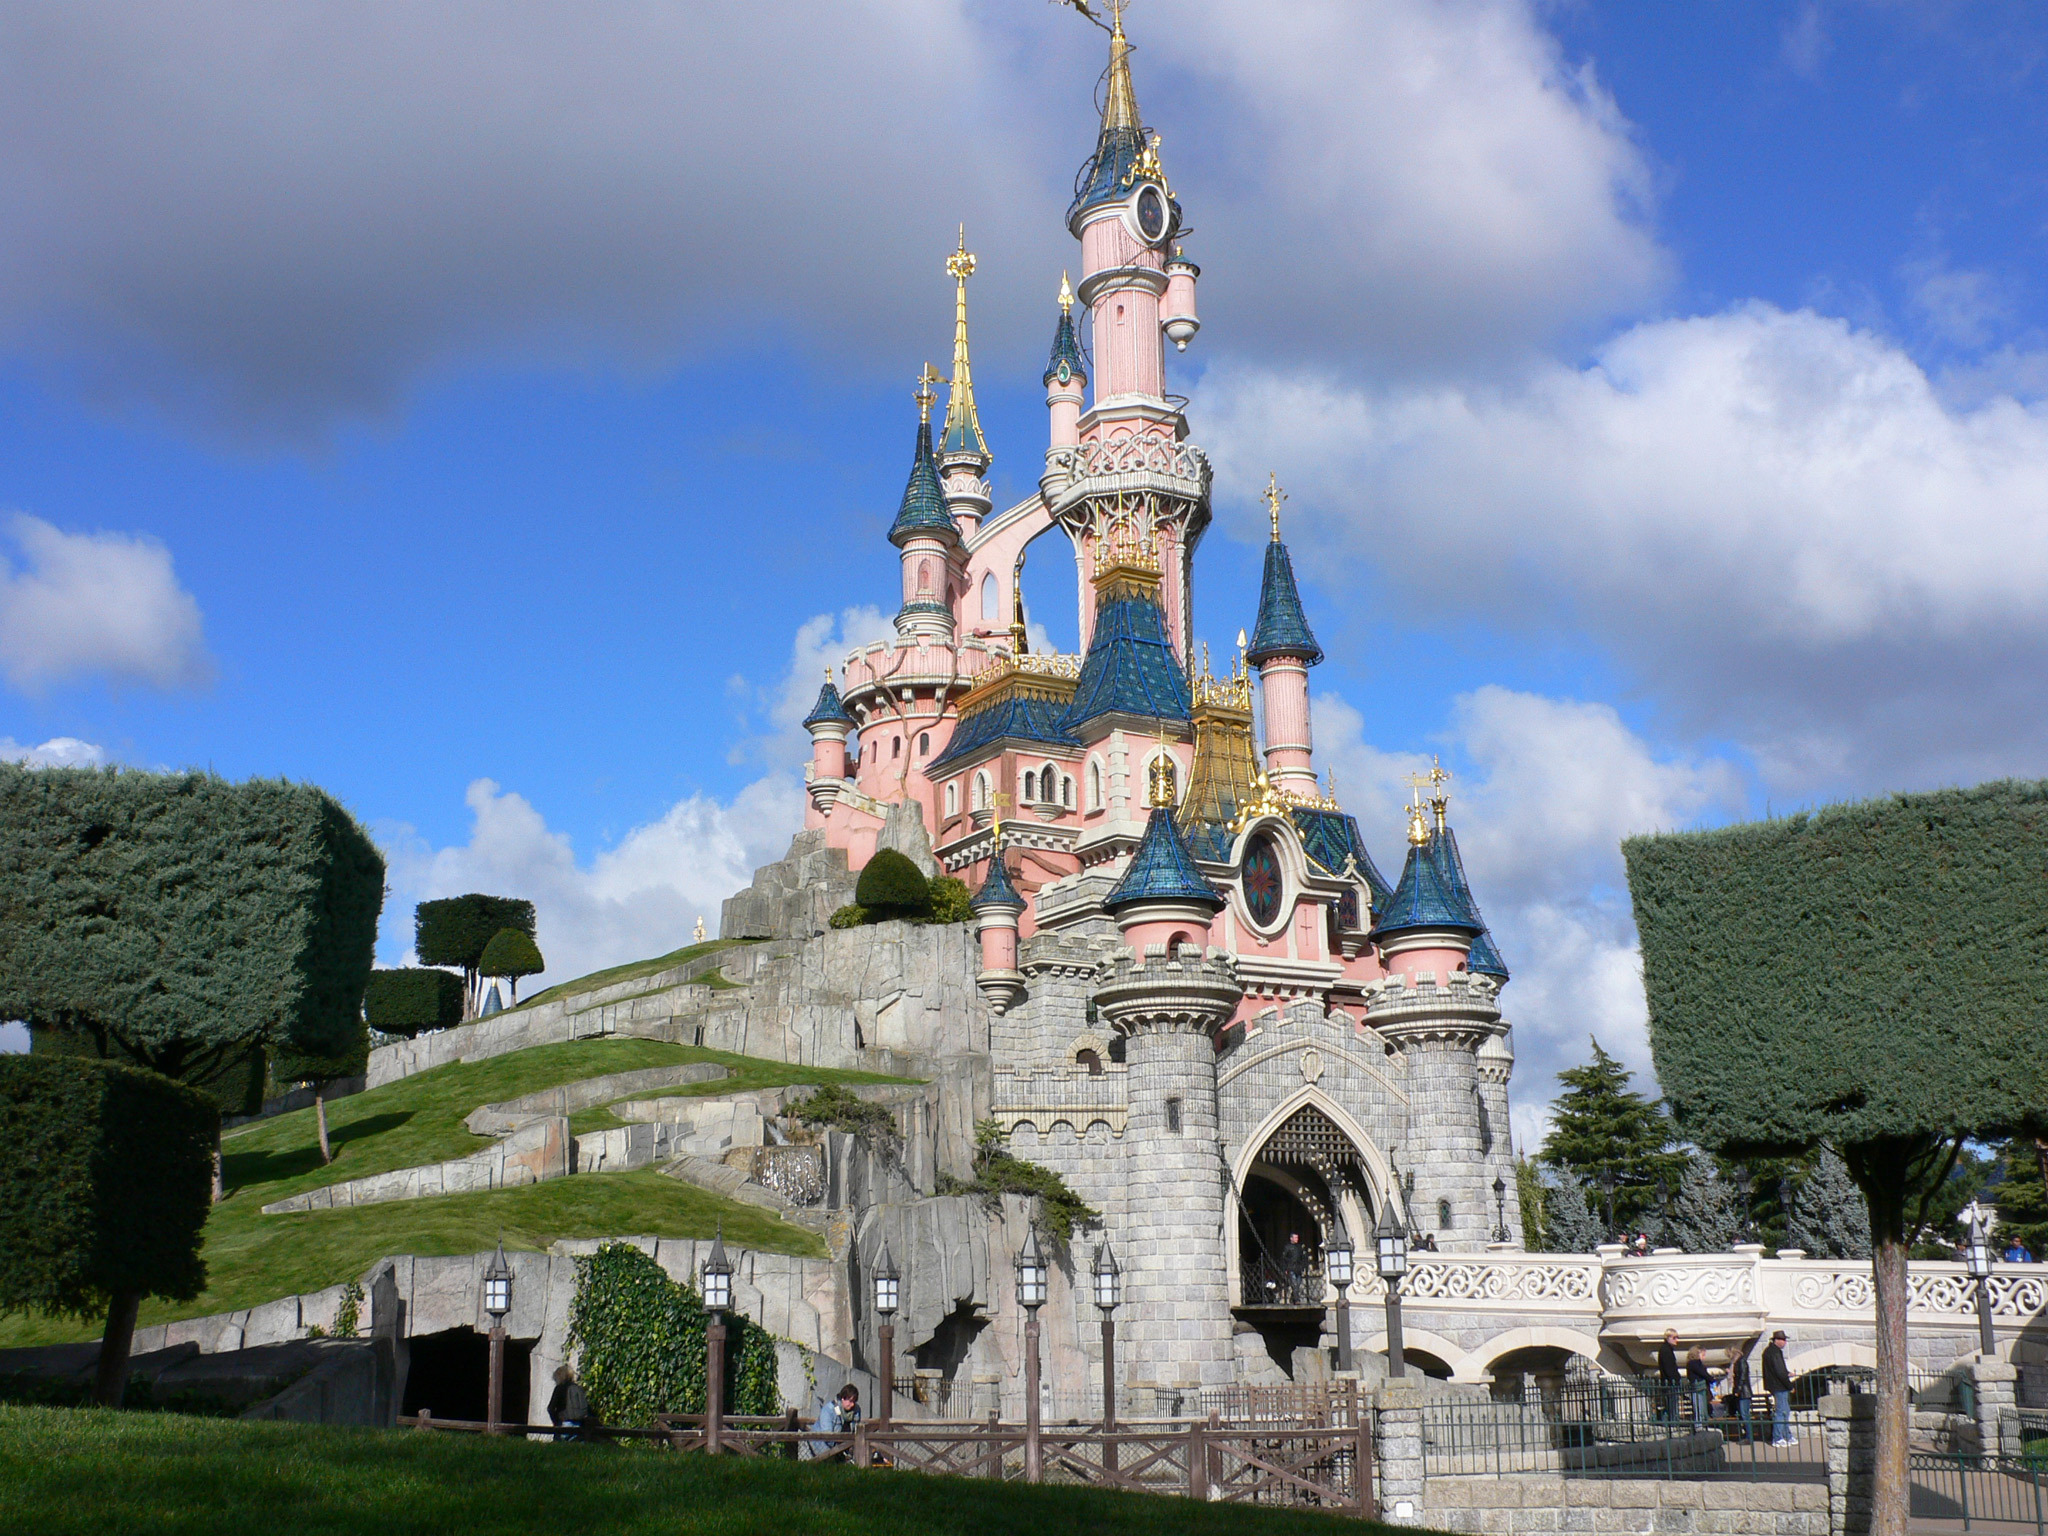 Sleeping Beauty's castle at Disneyland Paris